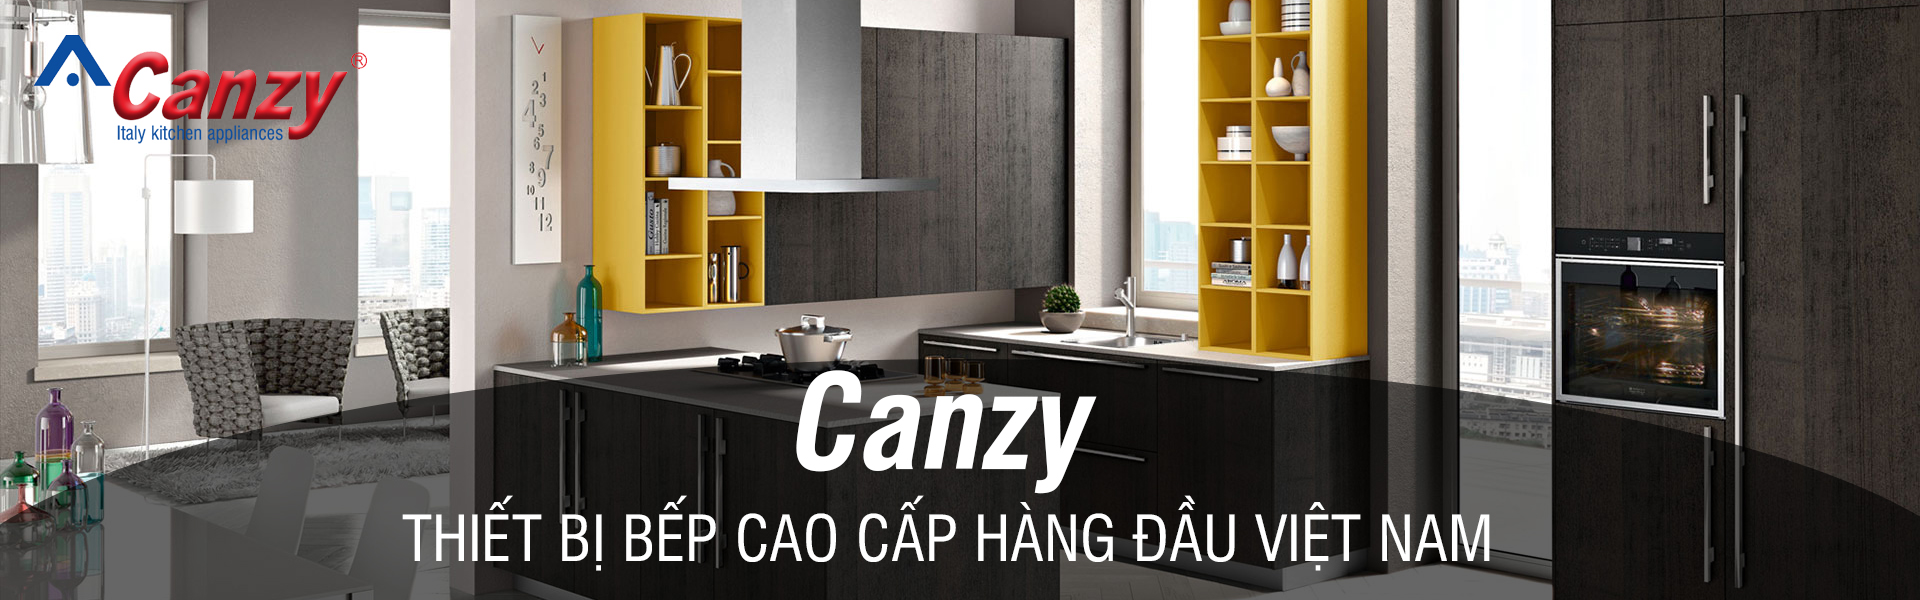 Bếp gas Canzy